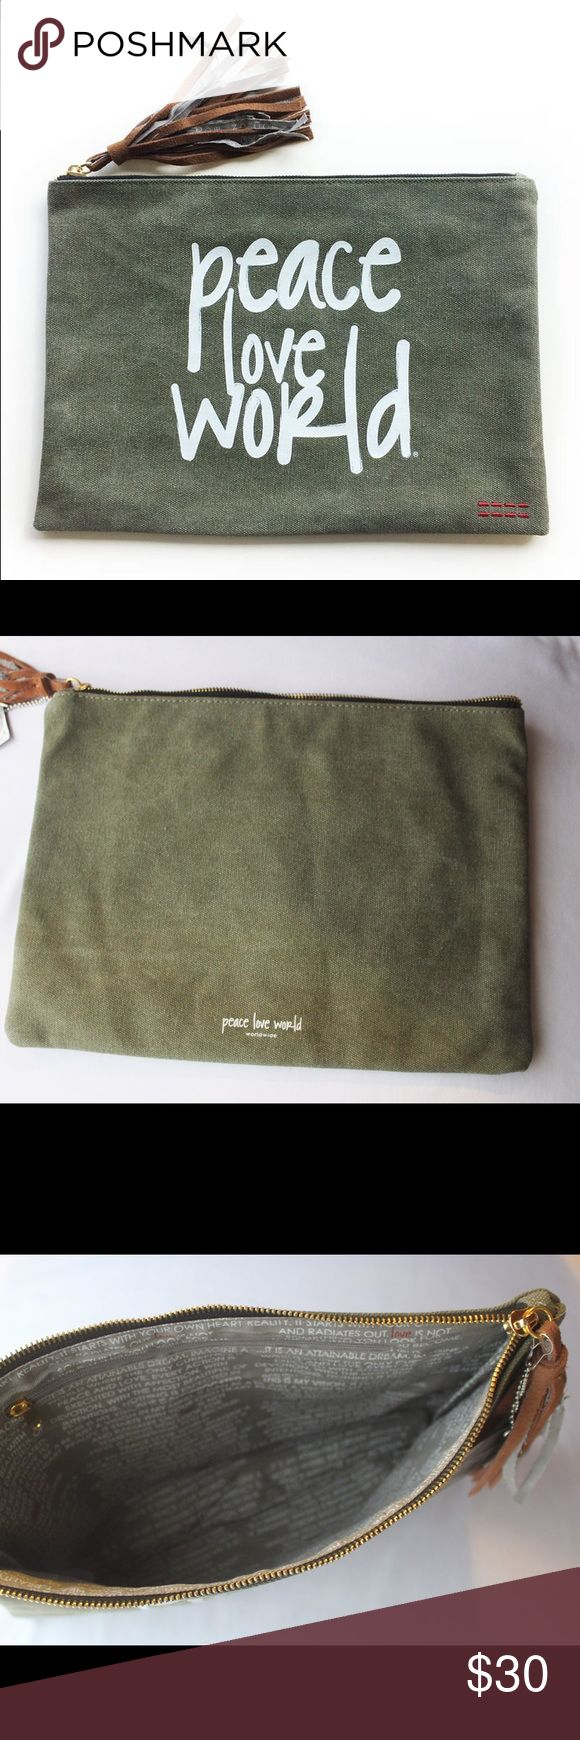 """Peace Love World Women's Green Holly Clutch Fun and perfect for the summer Dimensions 9.5"""" L x 12.5"""" W Actual pictures ❌No trades please. If you have any questions about this item I will be more than happy to answer them. Peace Love World Bags Clutches & Wristlets"""